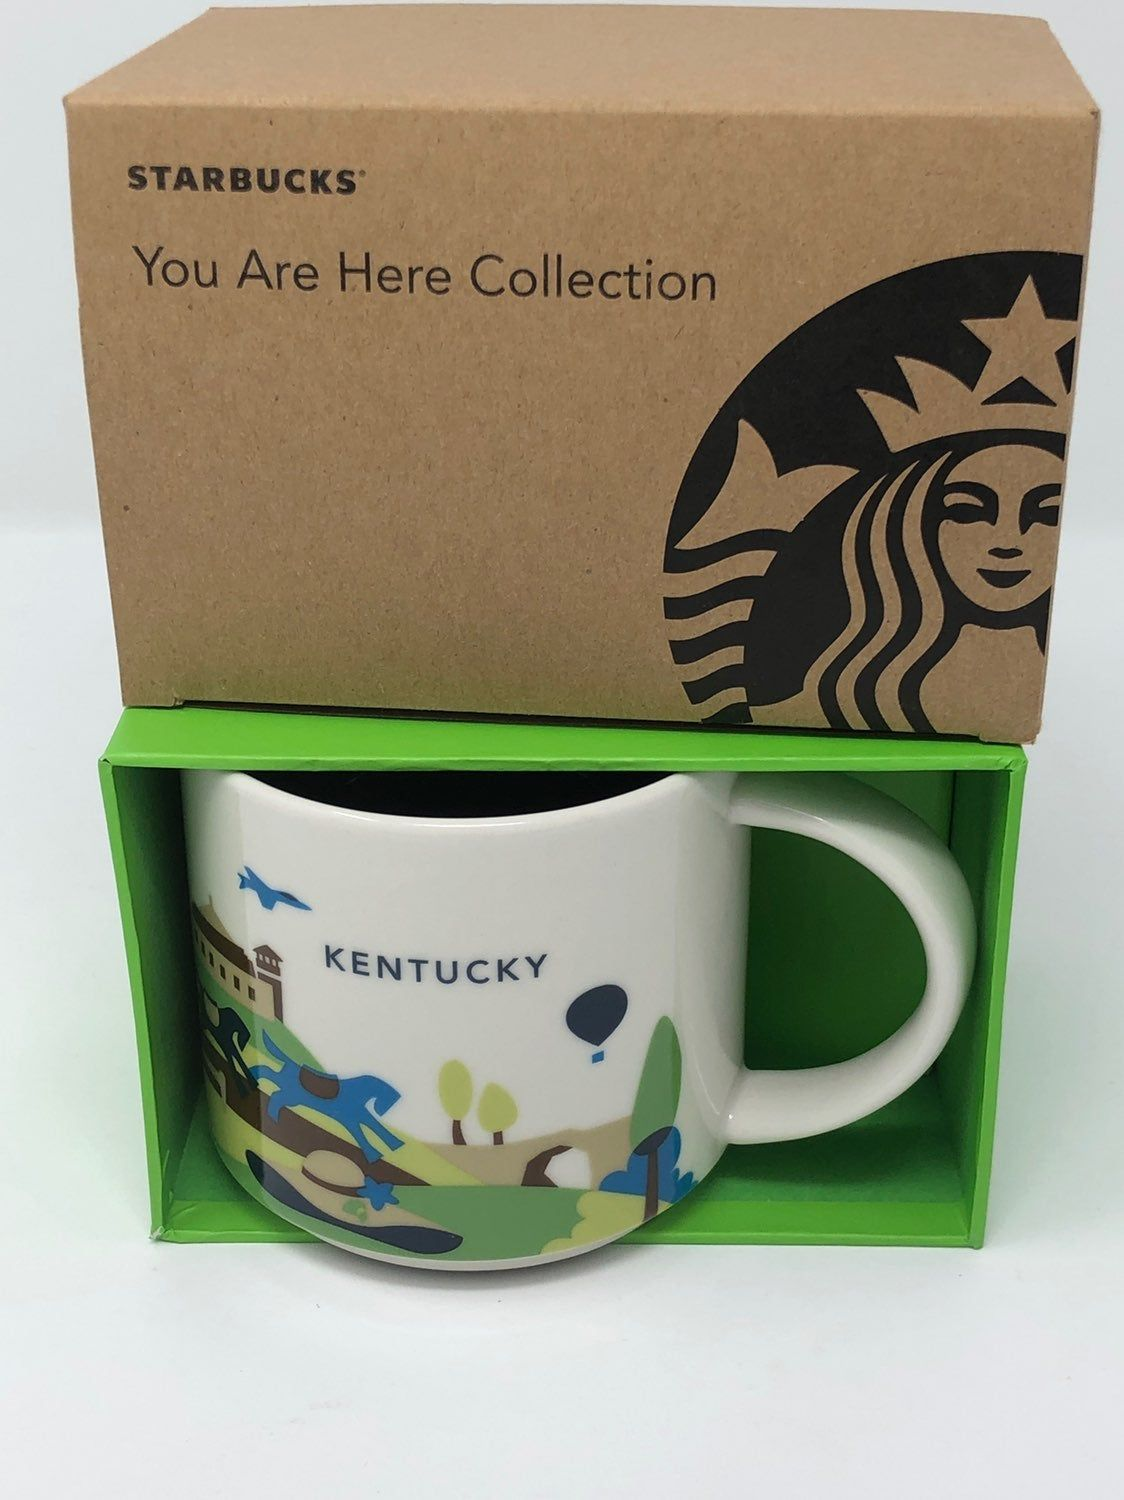 NEW 2014 Starbucks You Are Here Kentucky Collectible